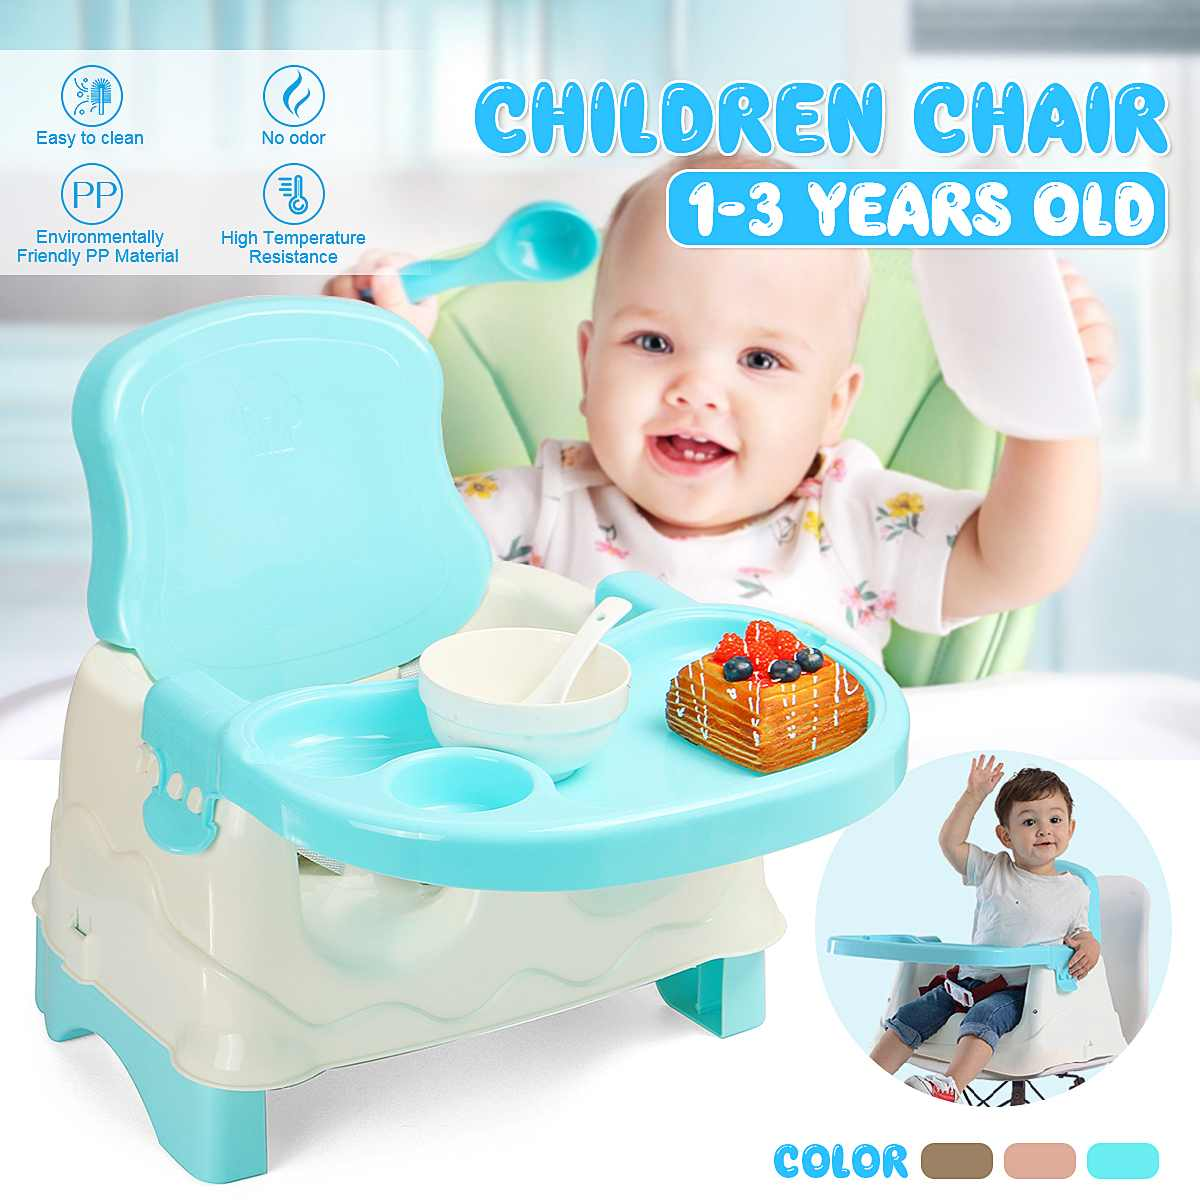 Baby Dining Chair Children's Dinette Portable Folding Baby Chair Food Grade PP 3 Levels Adjustable For 1-3 Years Old Kids